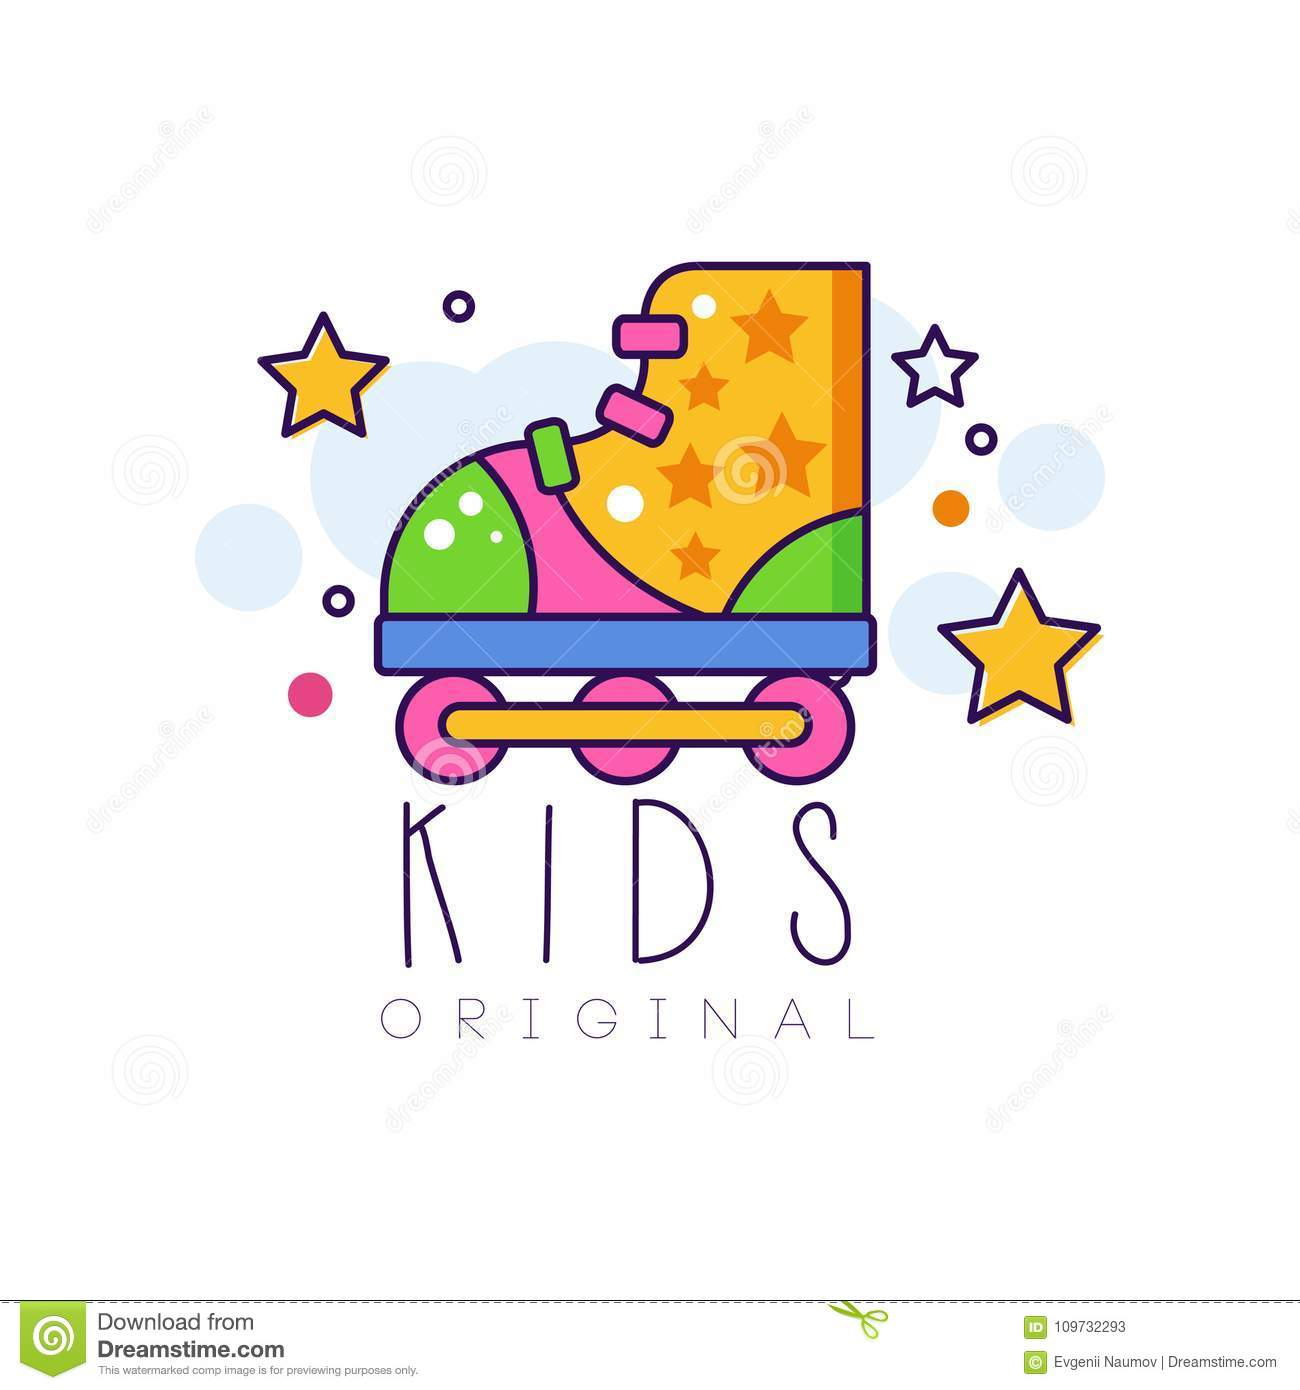 kids logo original creative concept template design element with